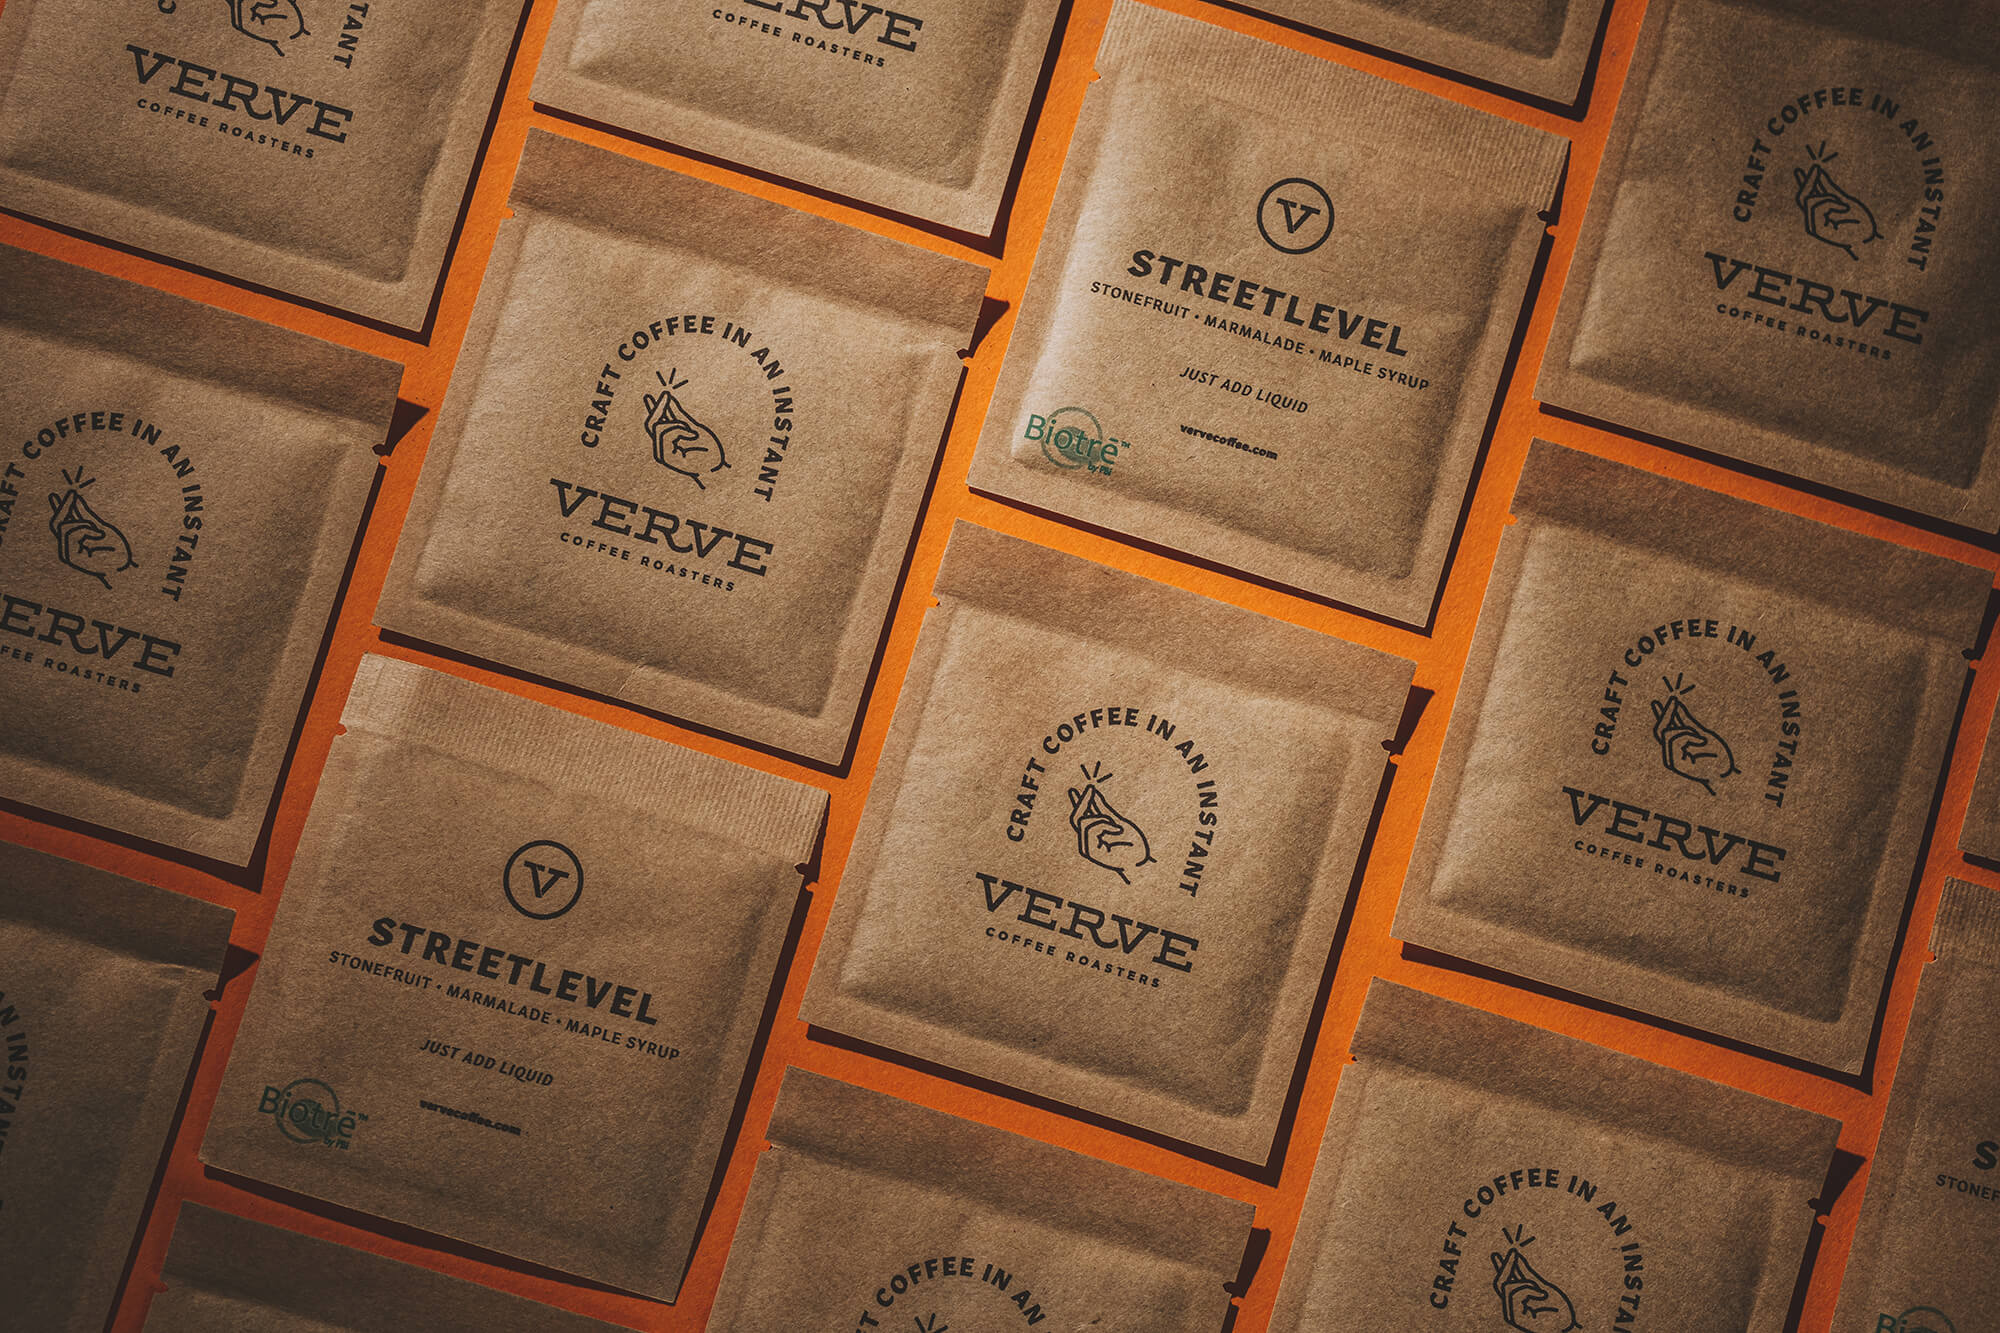 Verve instant craft coffee packets